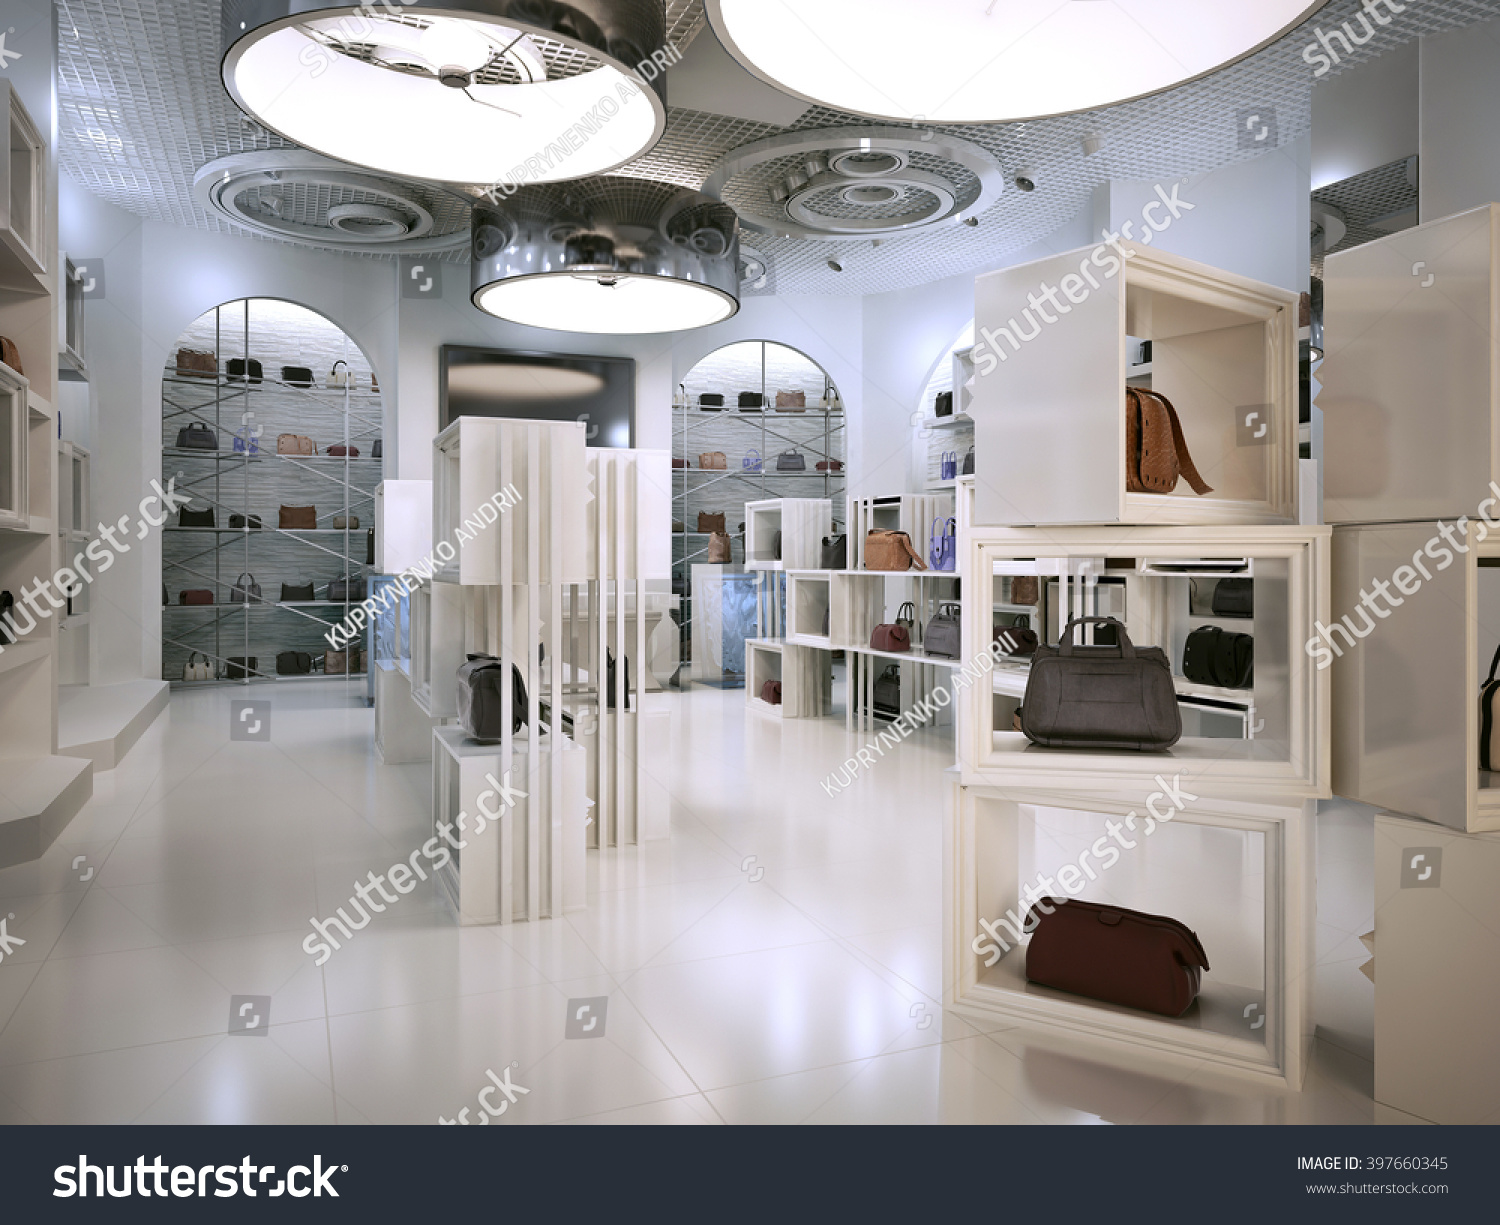 Luxury shop interior design art deco stock illustration for Boutique deco